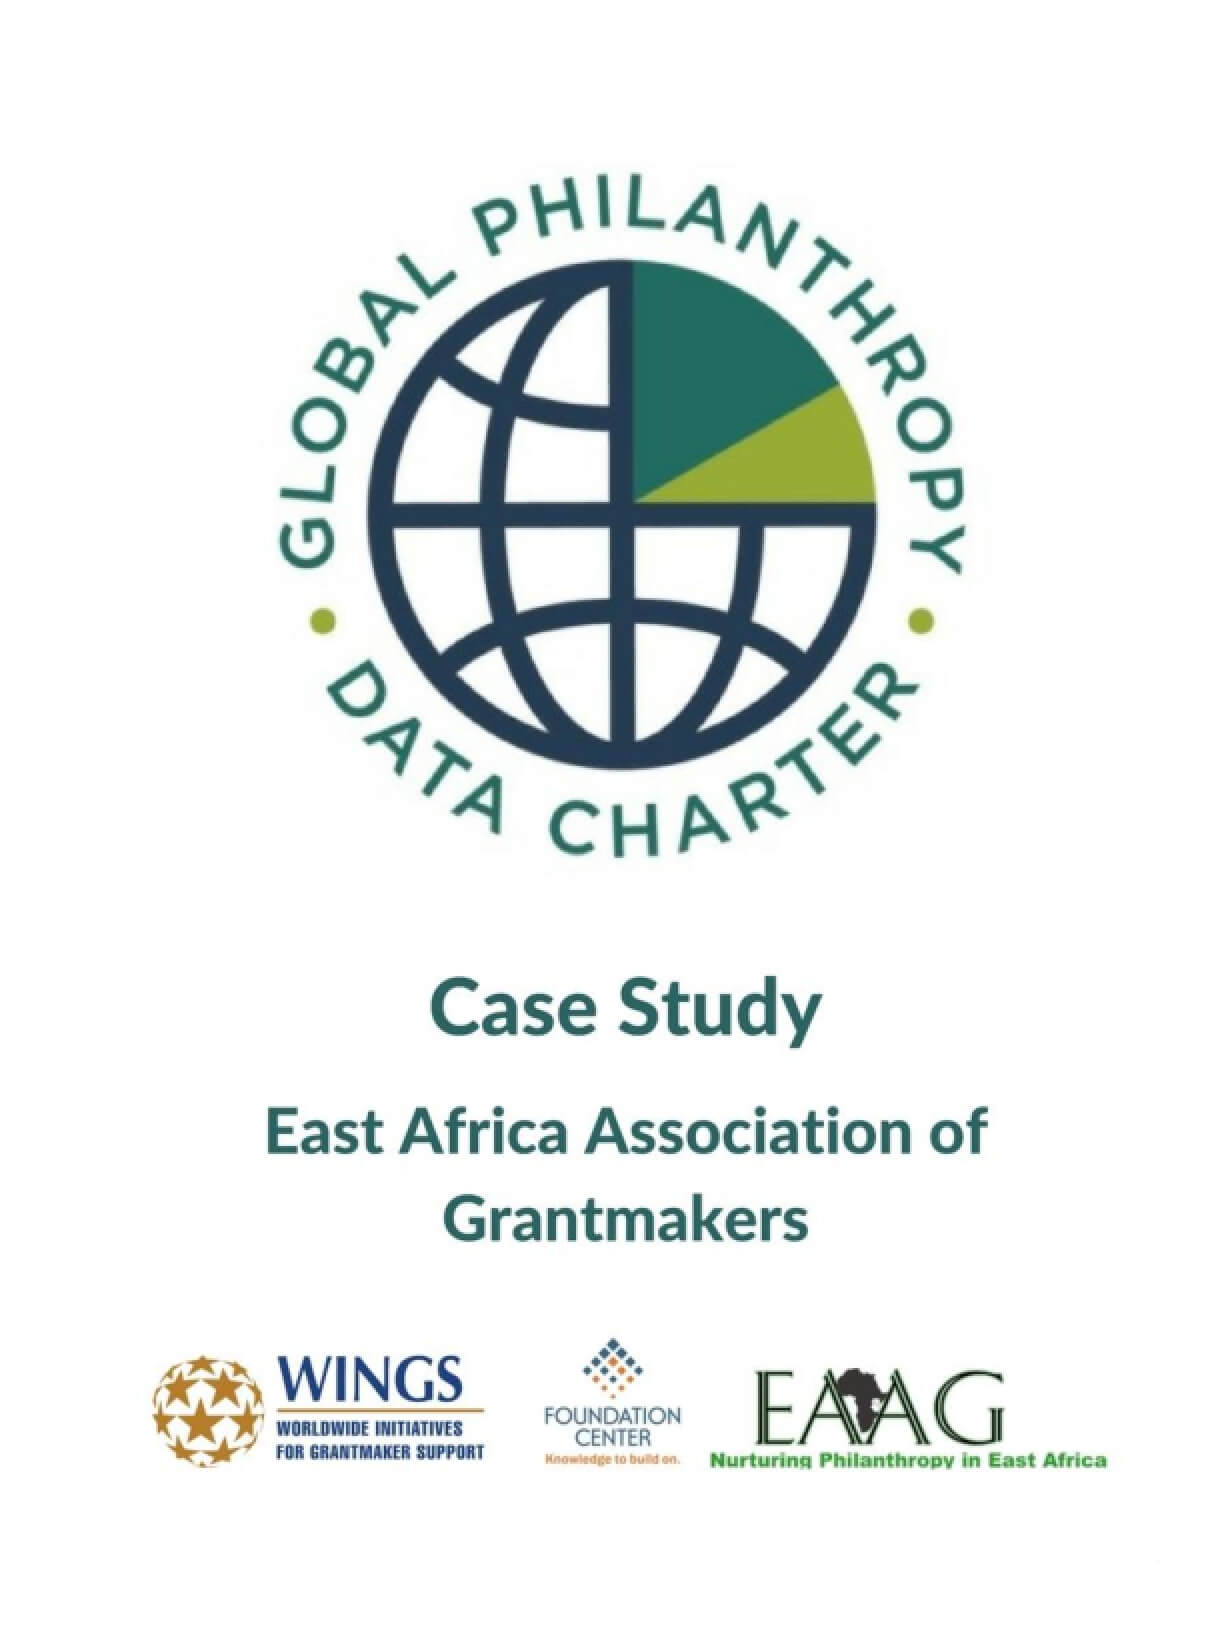 Global Philanthropy Data Charter - East Africa Association of Grantmakers Case Study